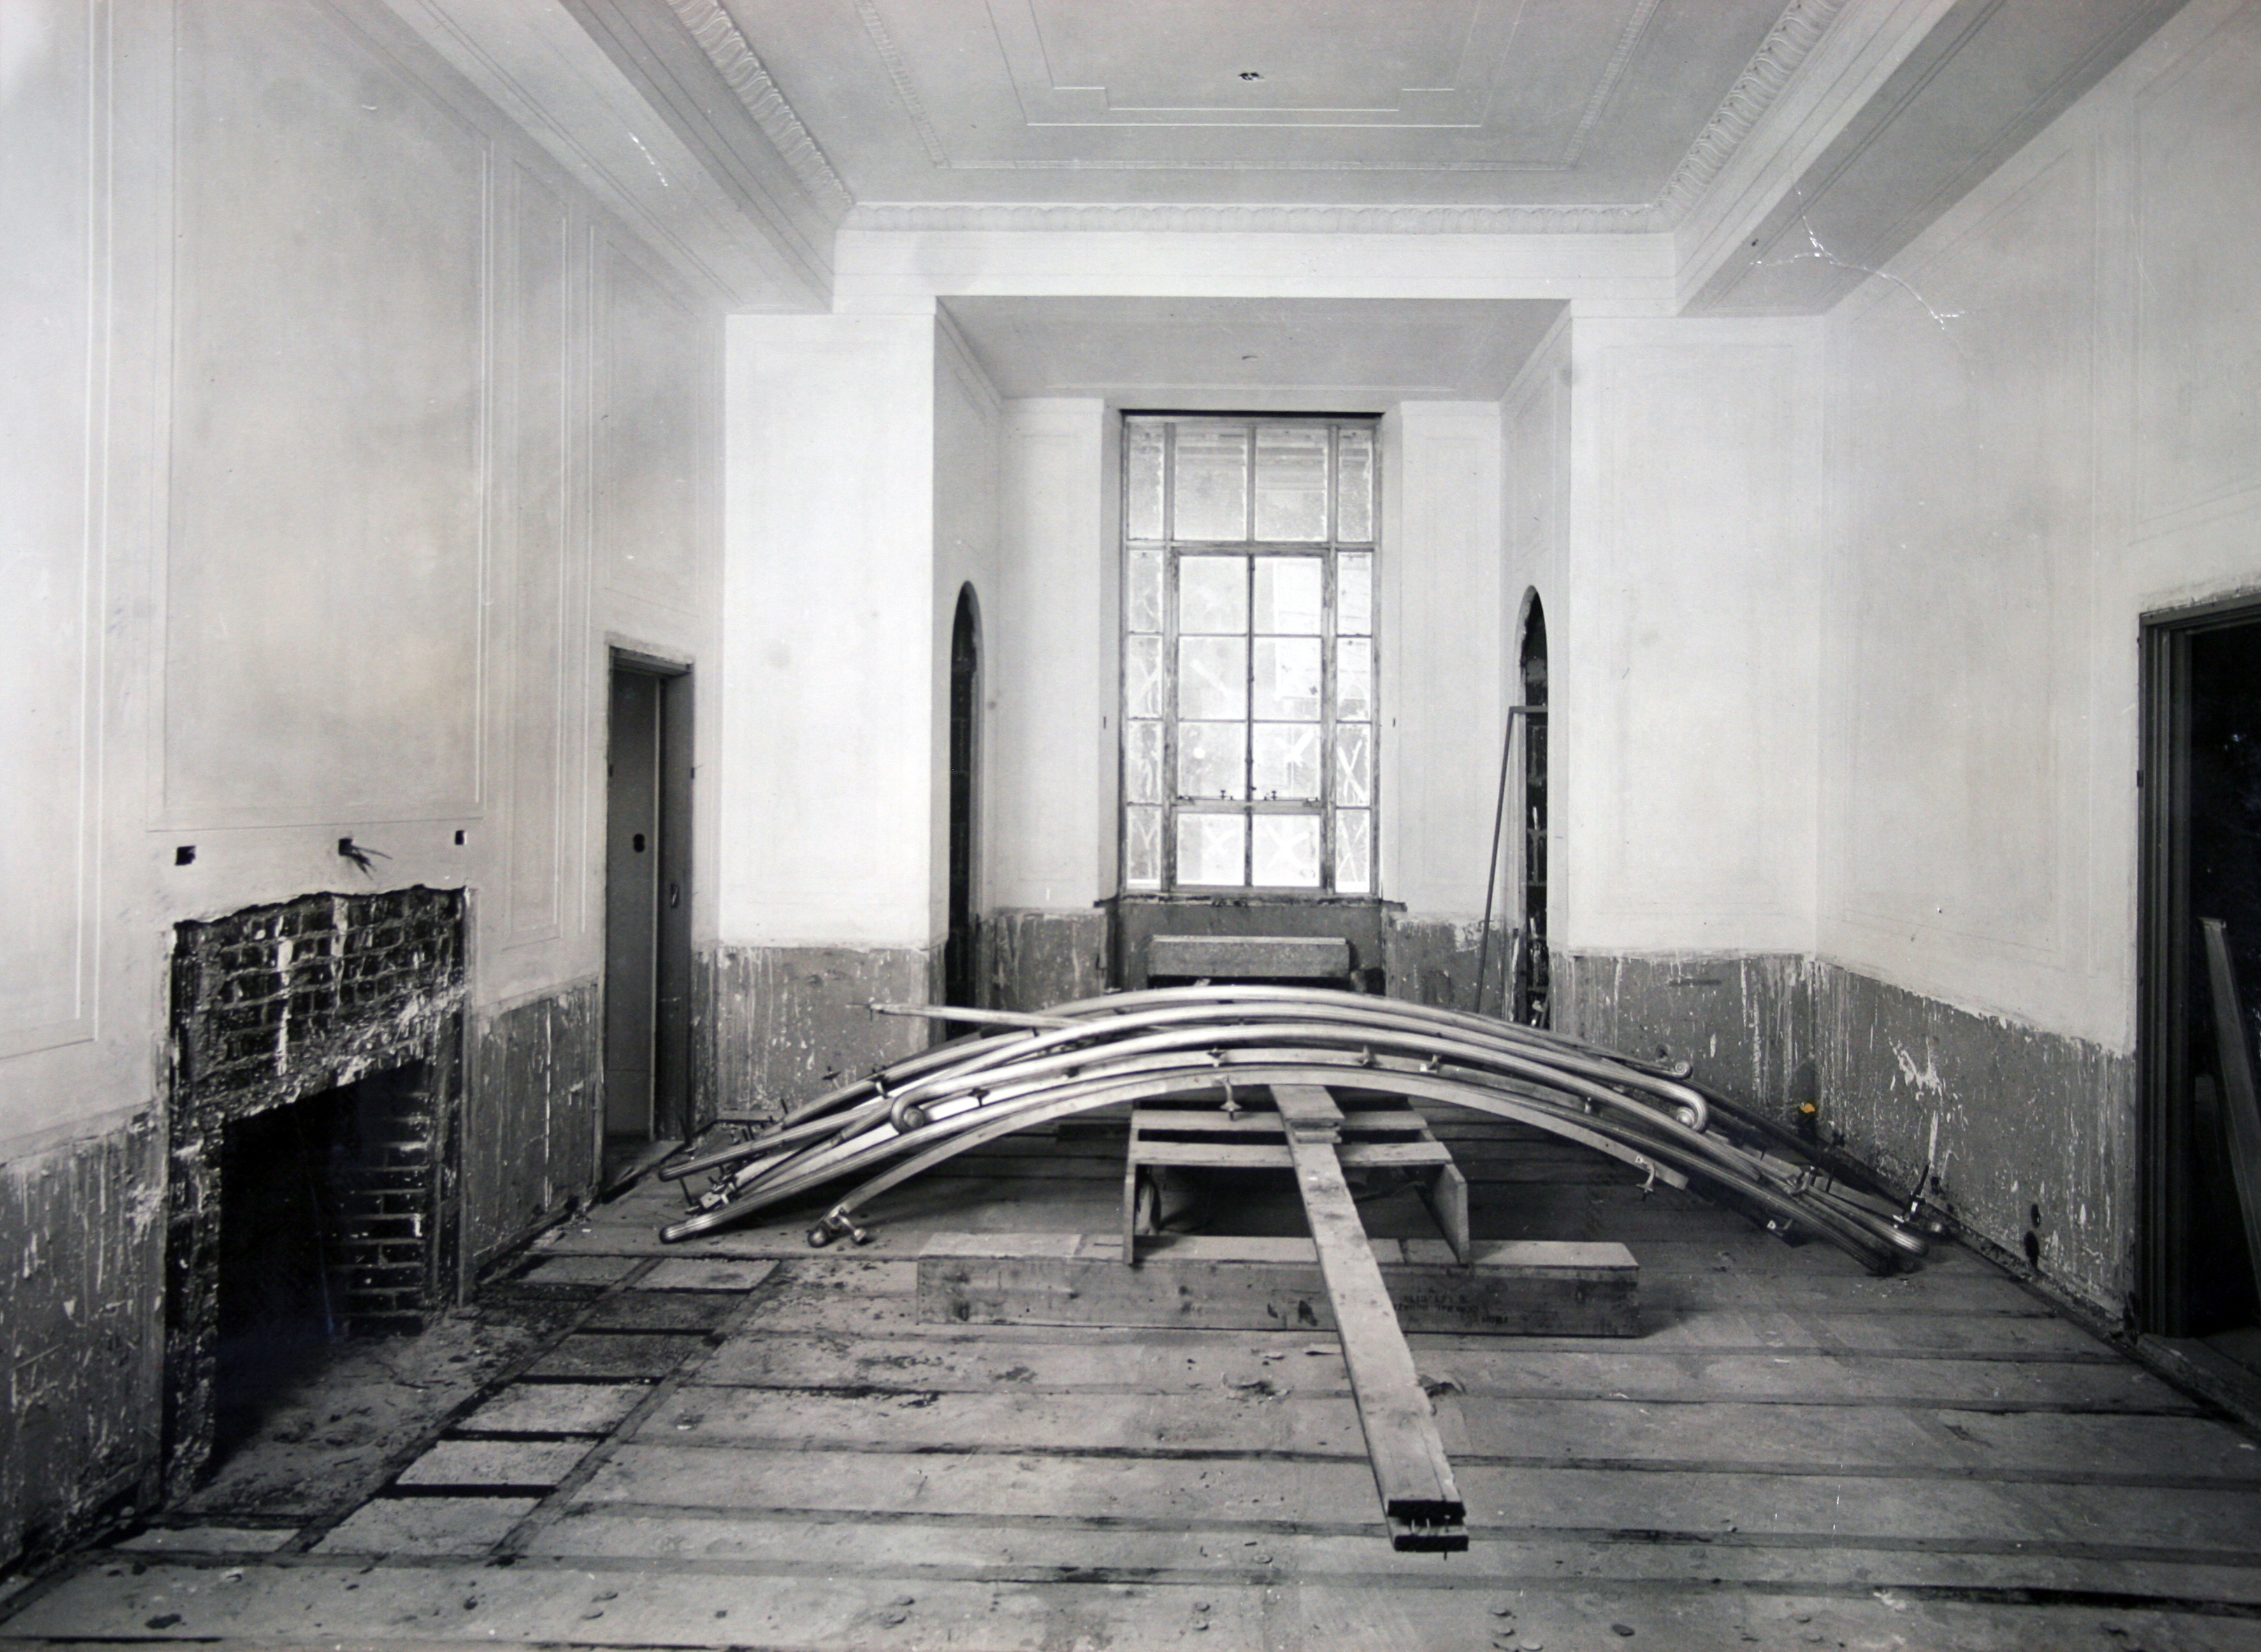 Interior view of the Justice building under construction. The office shown is awaiting installation of wood flooring and the fireplace mantel.